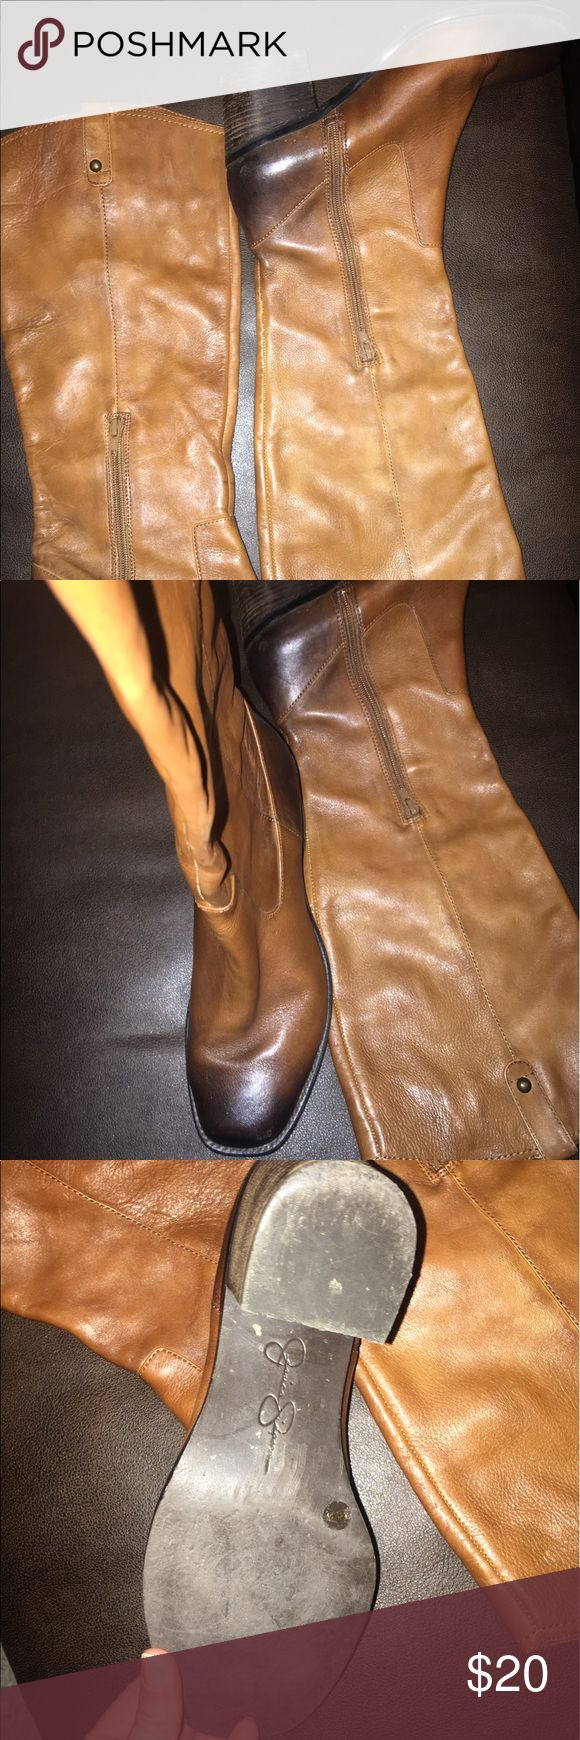 Jessica Simpson boots Jessica Simpson tall knee boots. Jessica Simpson Shoes Heeled Boots